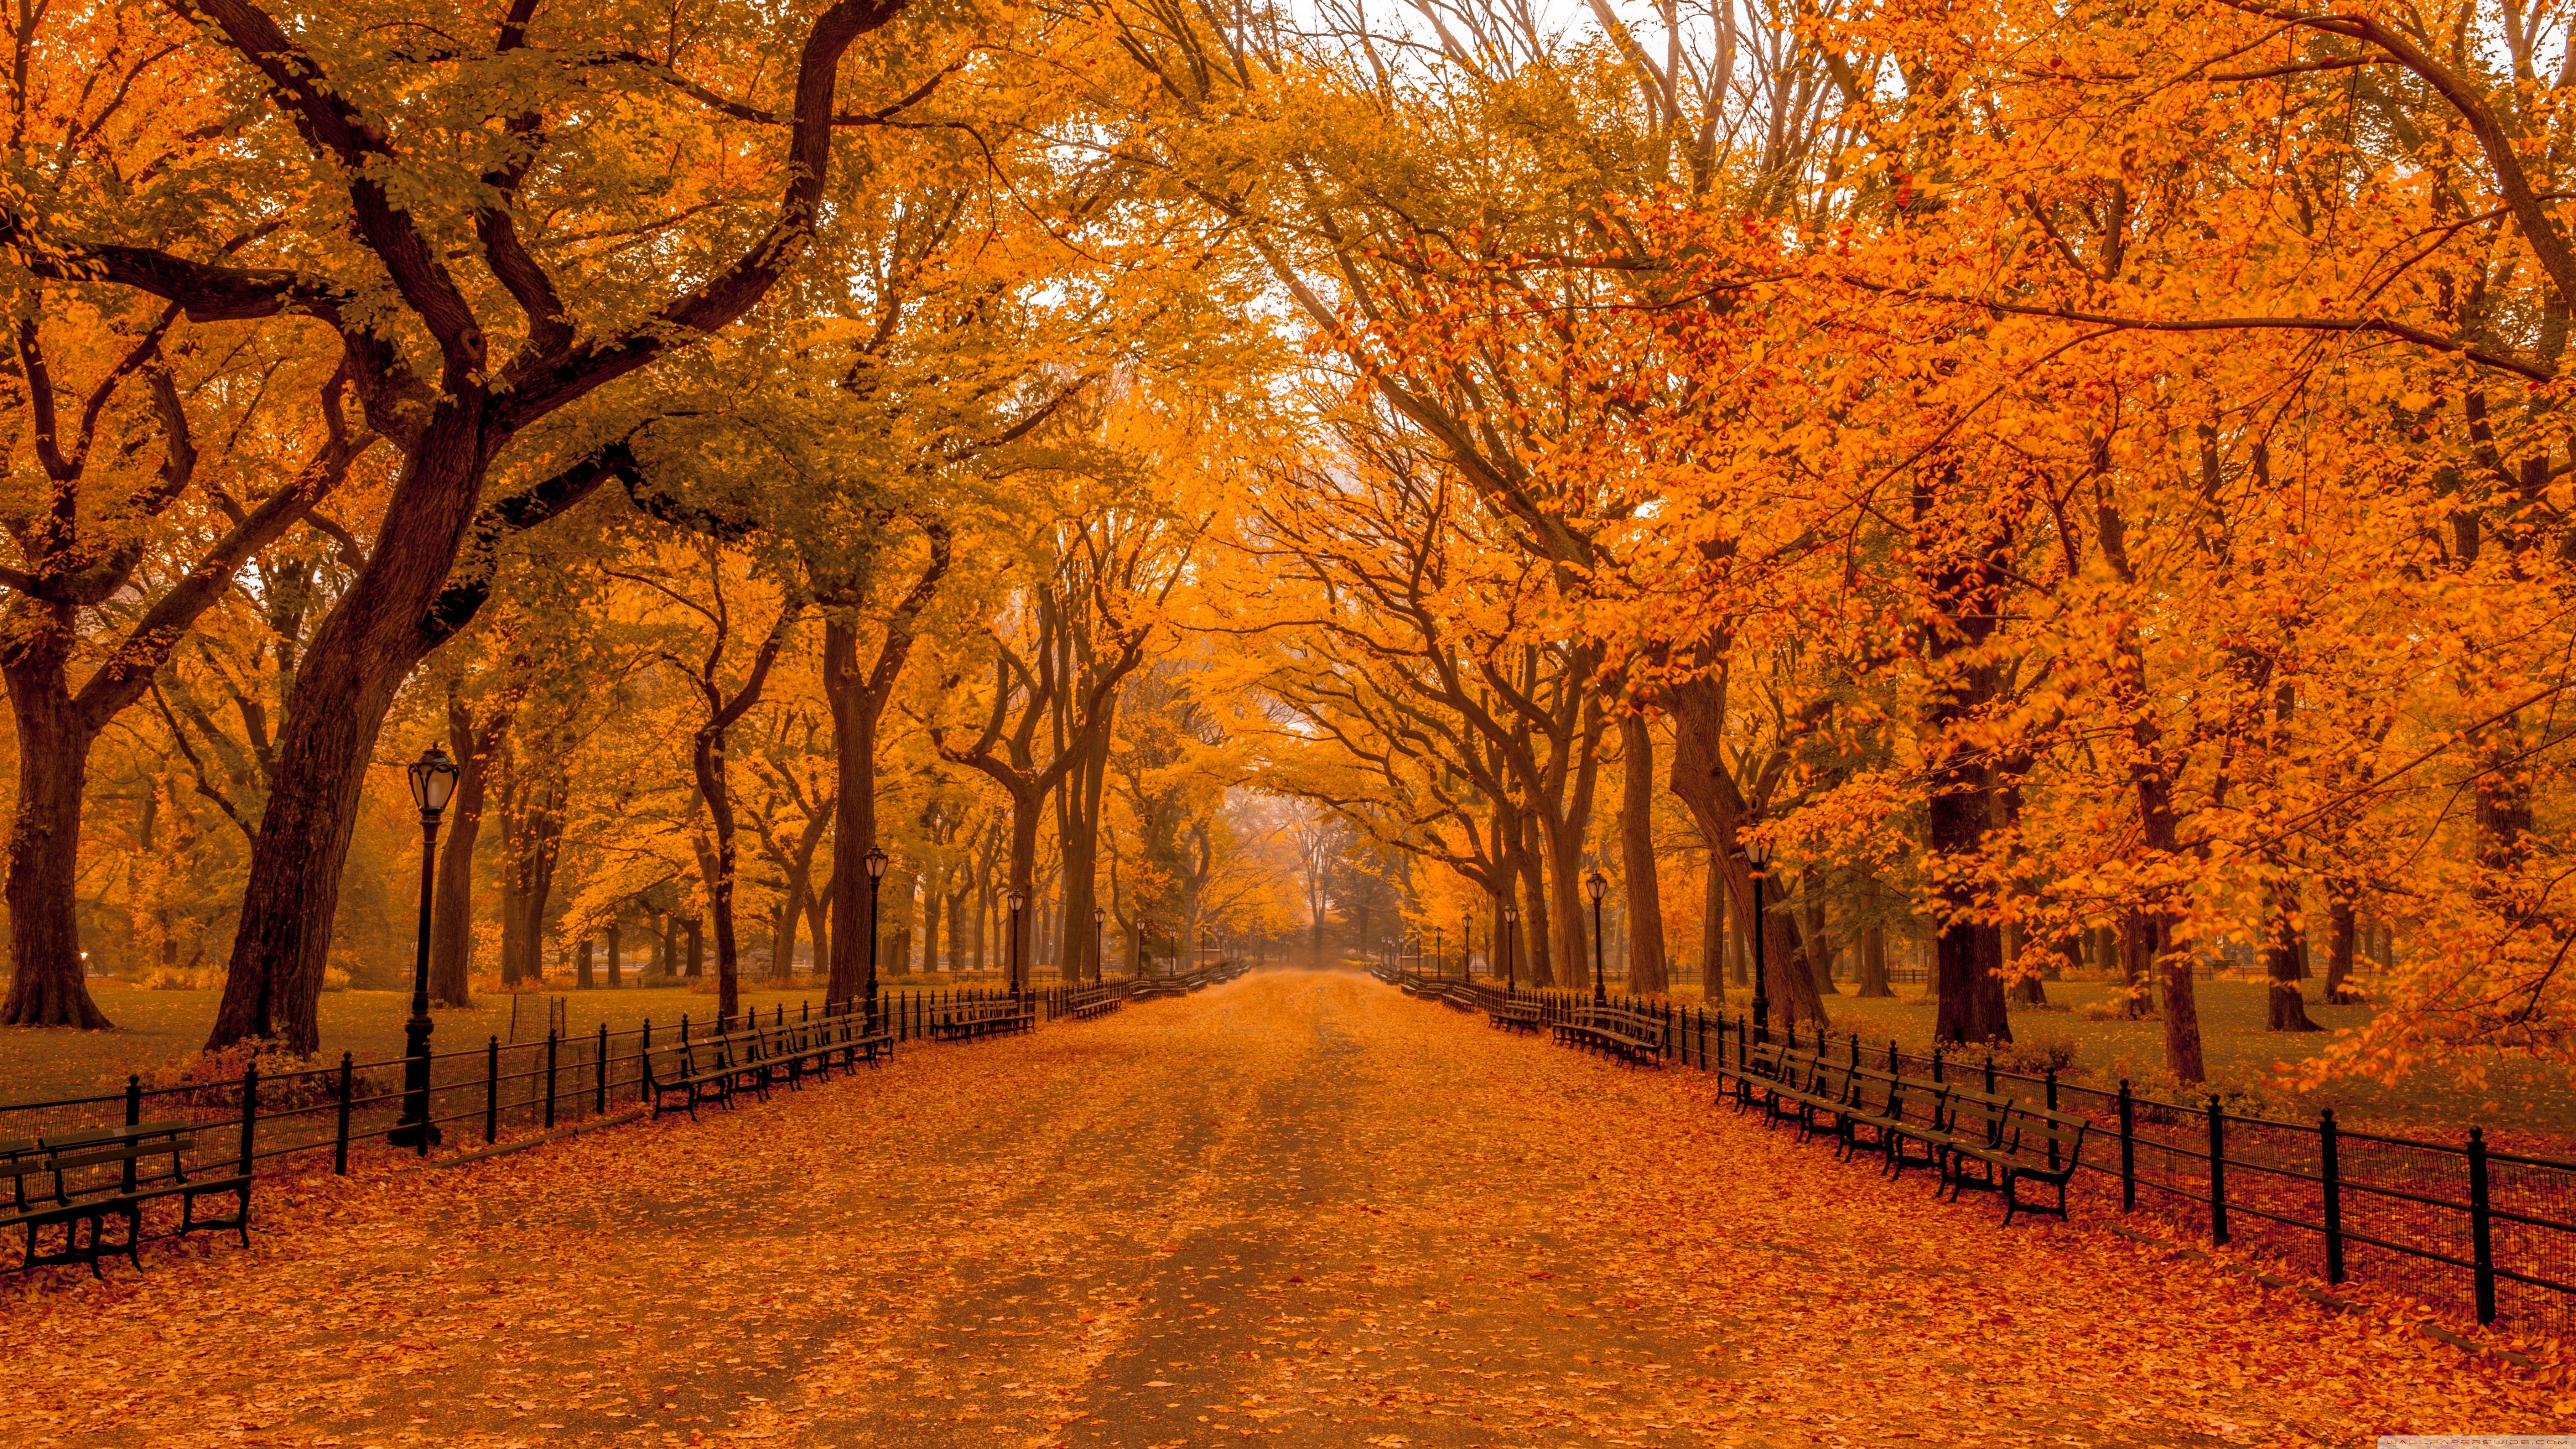 Ultra Hd Autumn Wallpapers Top Free Ultra Hd Autumn Backgrounds Wallpaperaccess